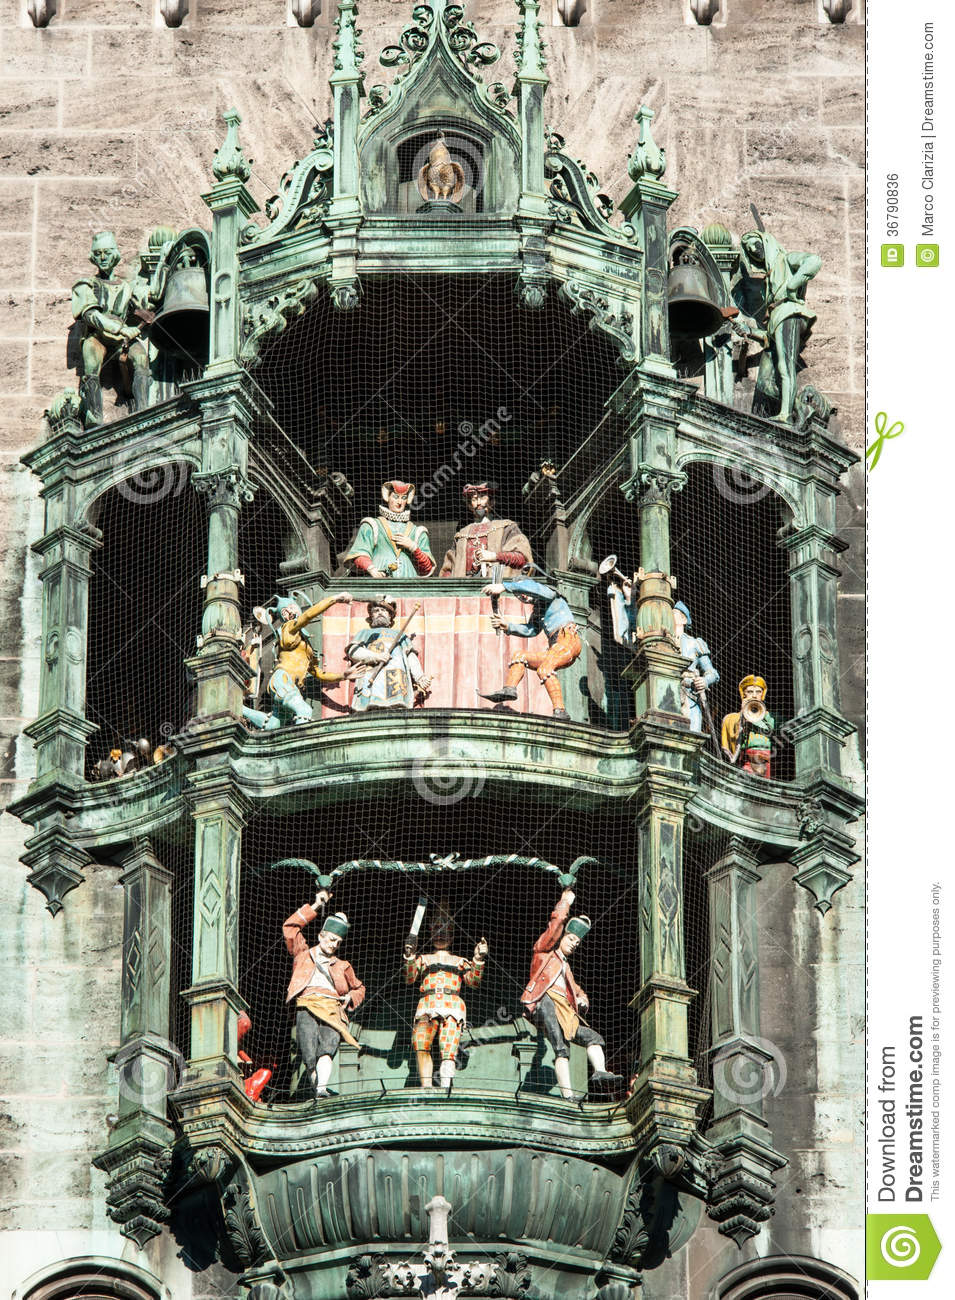 christmas glockenspiel - photo #30